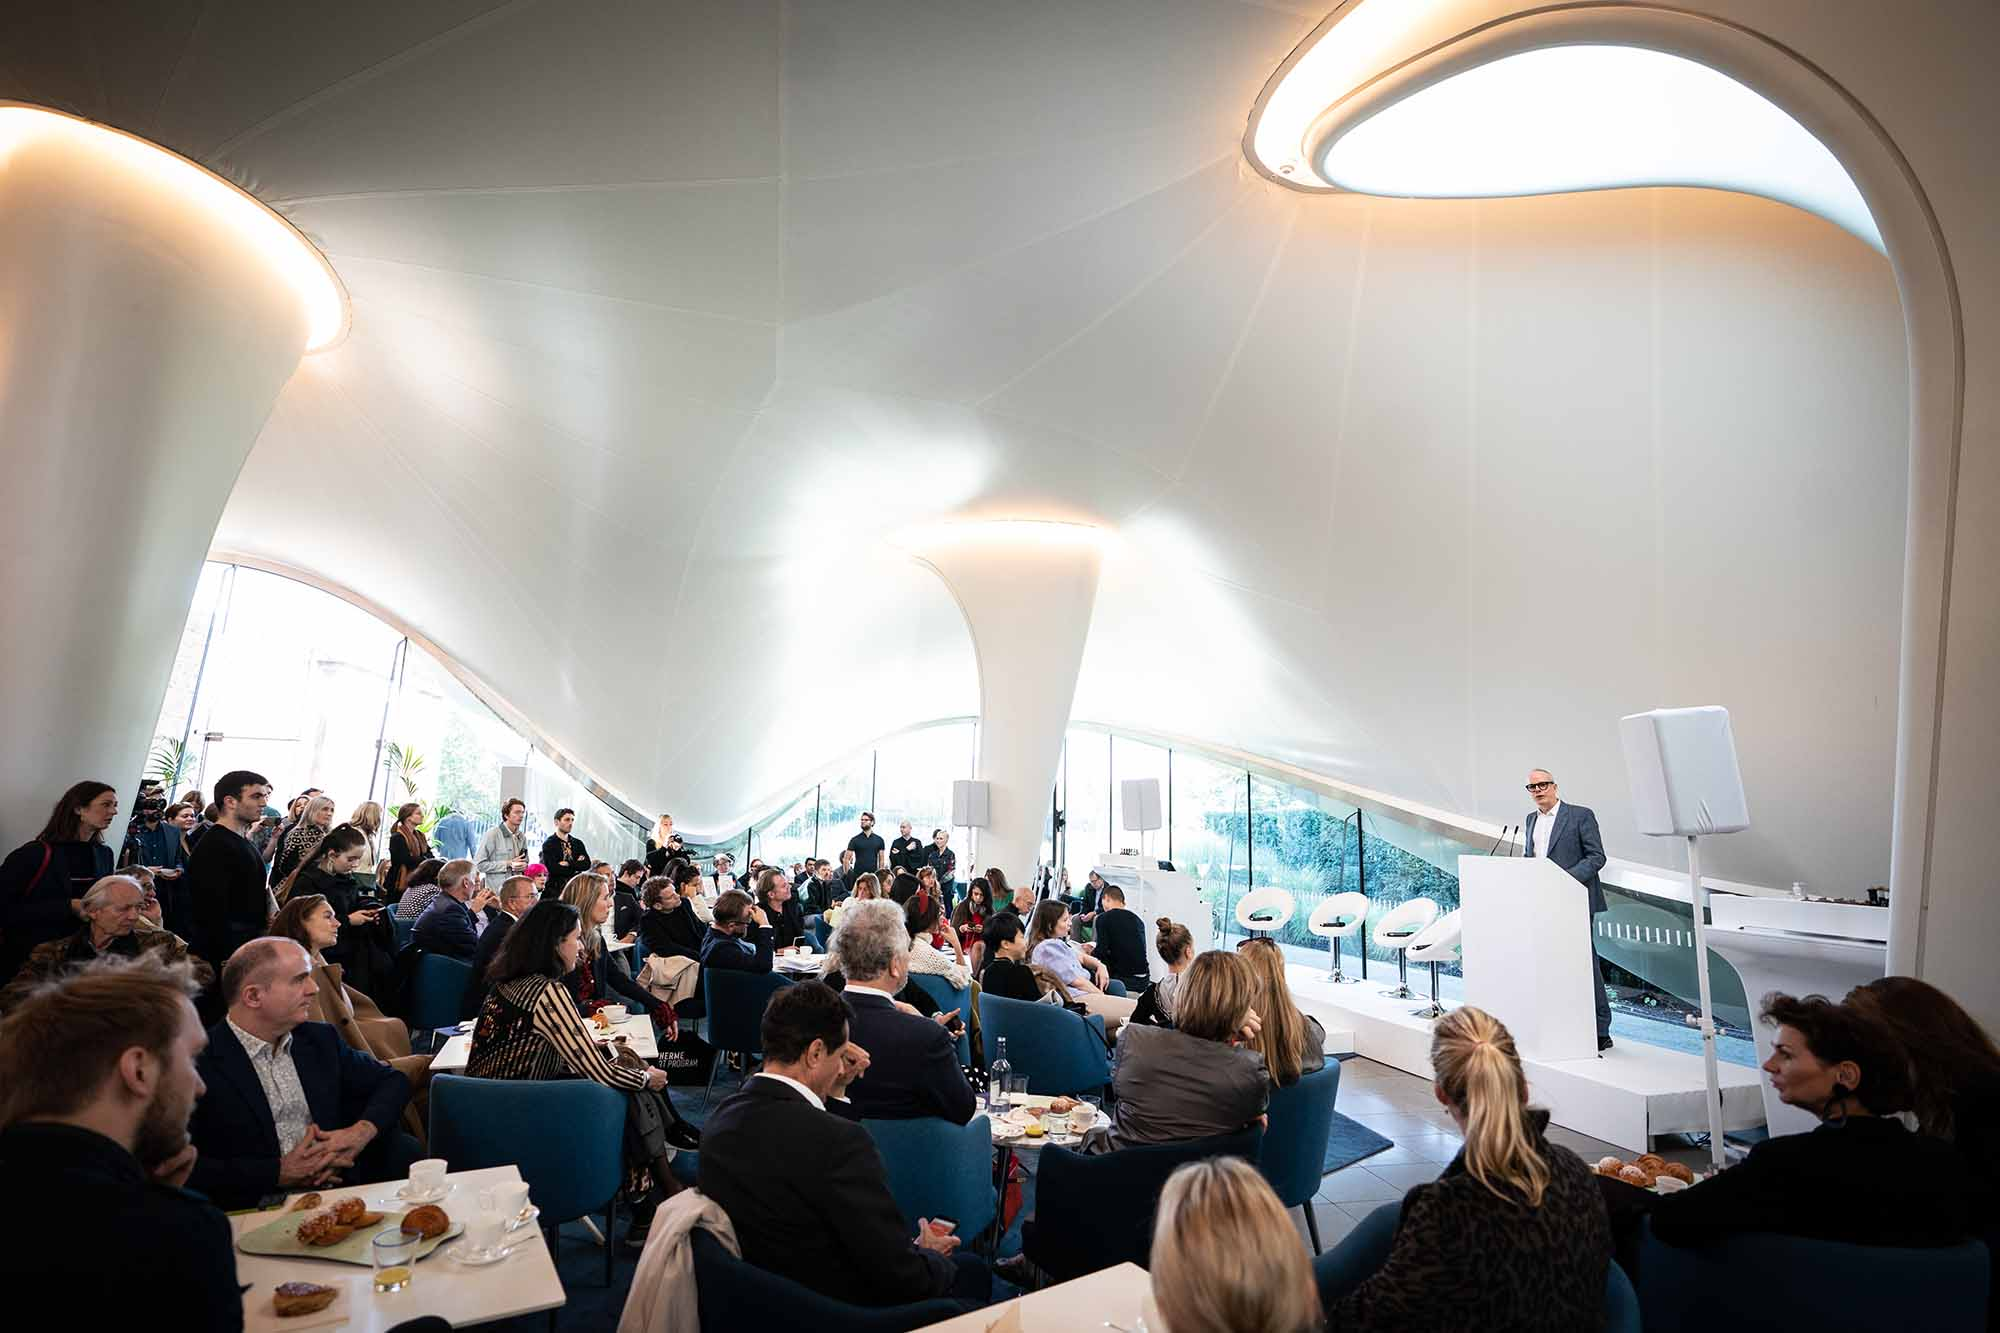 Hans Ulrich Obrist speaking during the Serpentine Galleries' Frieze Breakfast